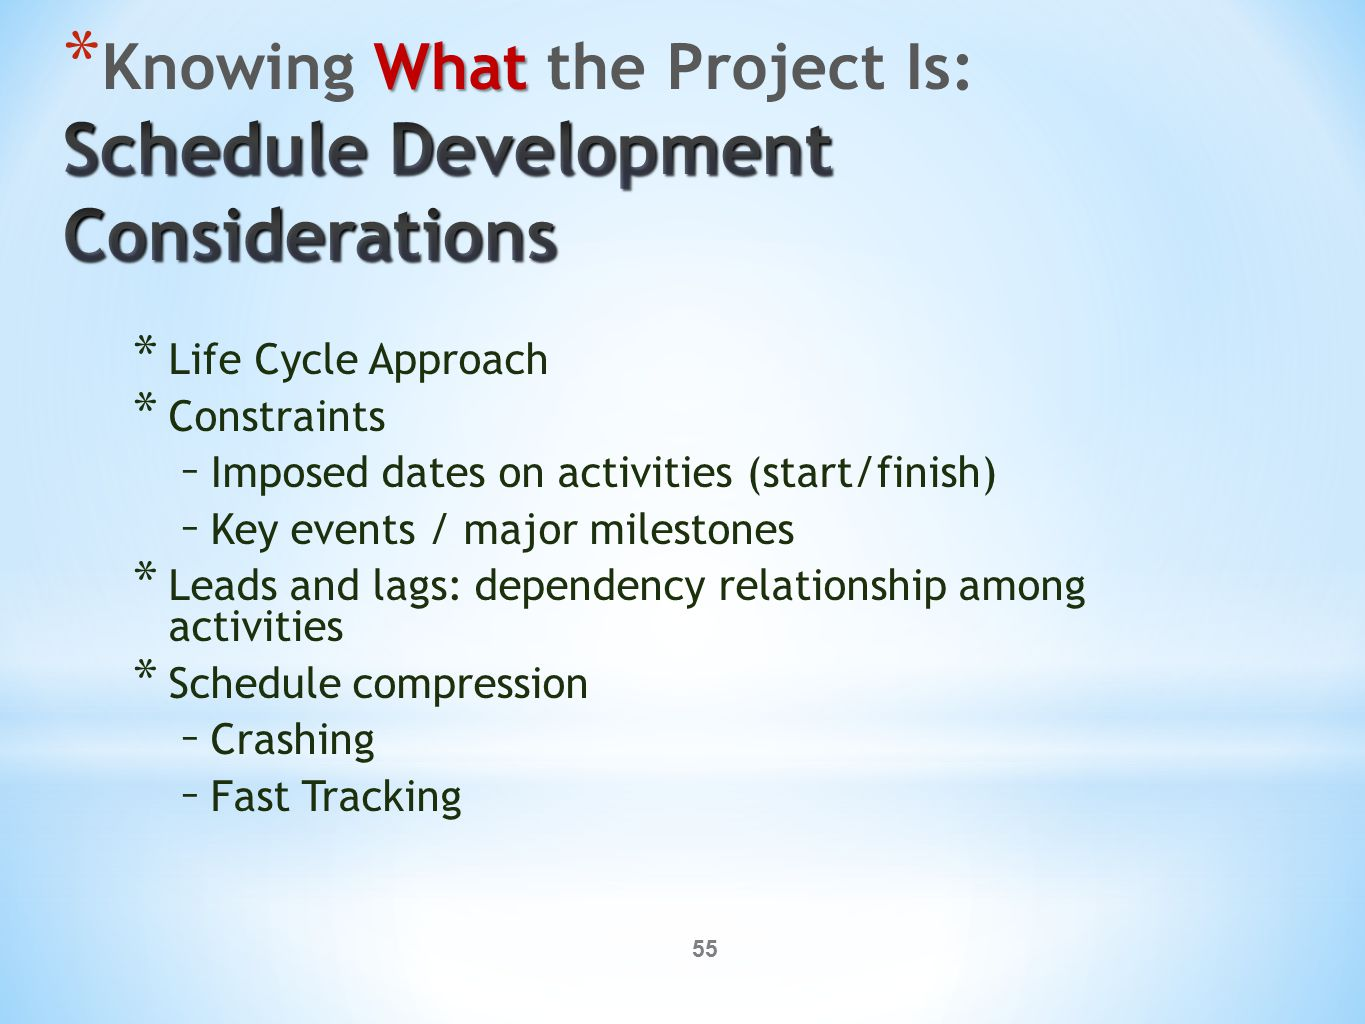 55 * Life Cycle Approach * Constraints – Imposed dates on activities (start/finish) – Key events / major milestones * Leads and lags: dependency relationship among activities * Schedule compression – Crashing – Fast Tracking